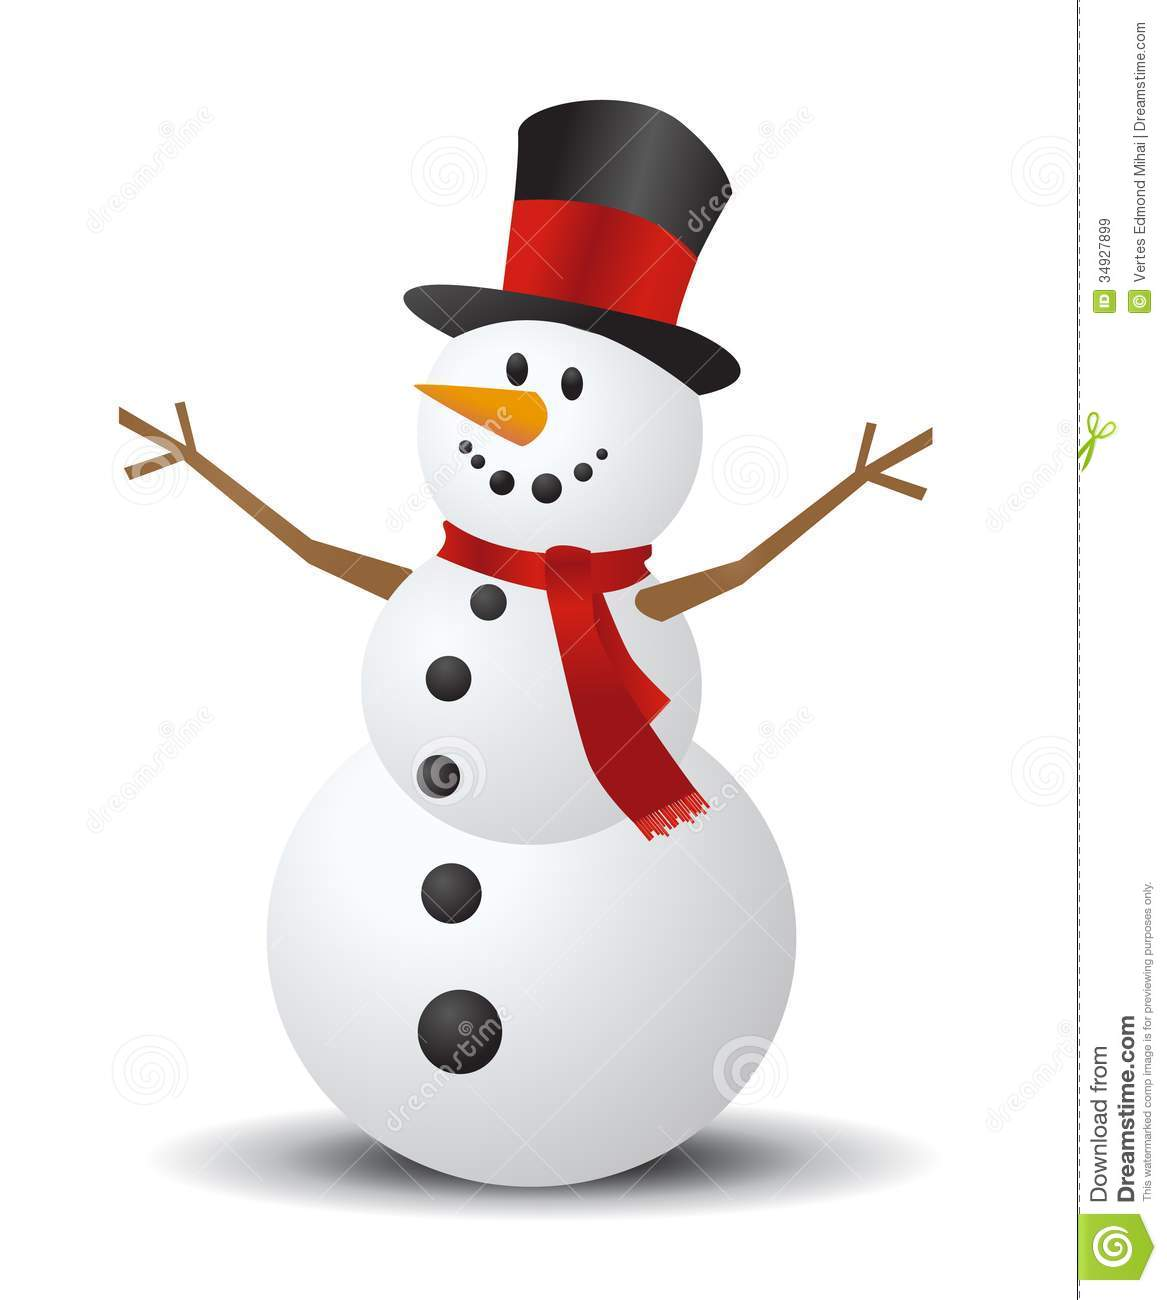 Merry christmas snowman clipart.